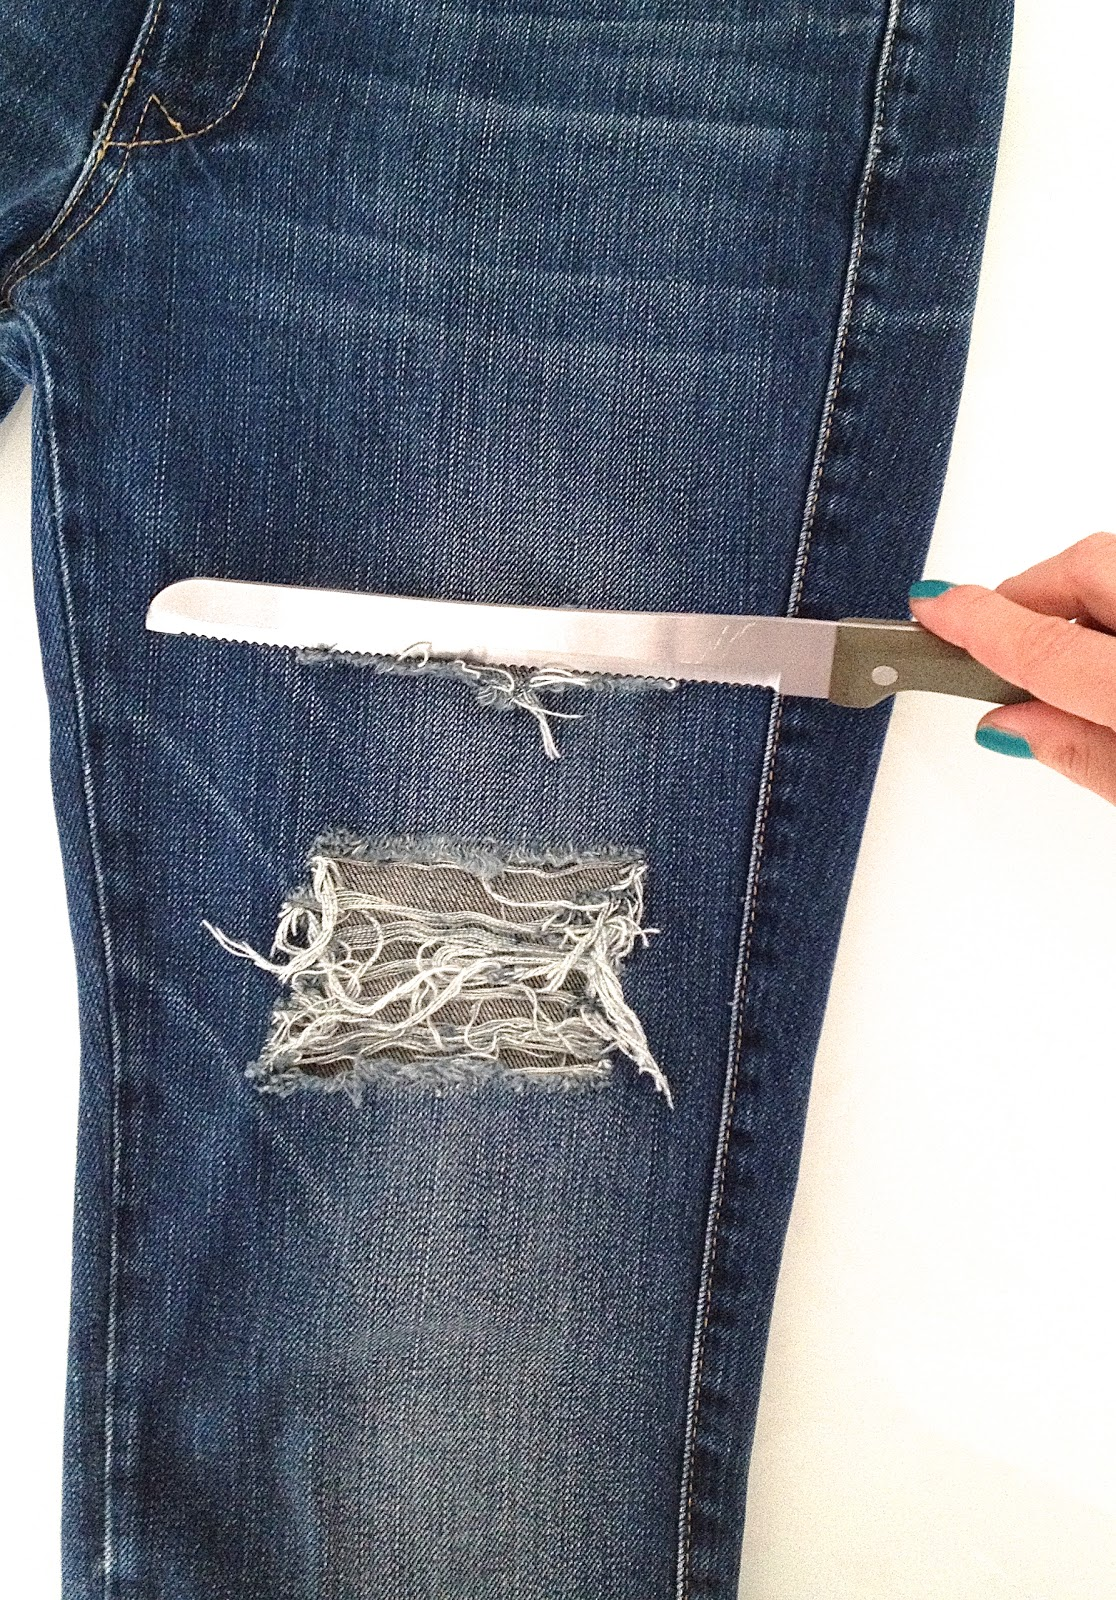 Get Inspired' by Daphnila: DIY: RIPPED JEANS